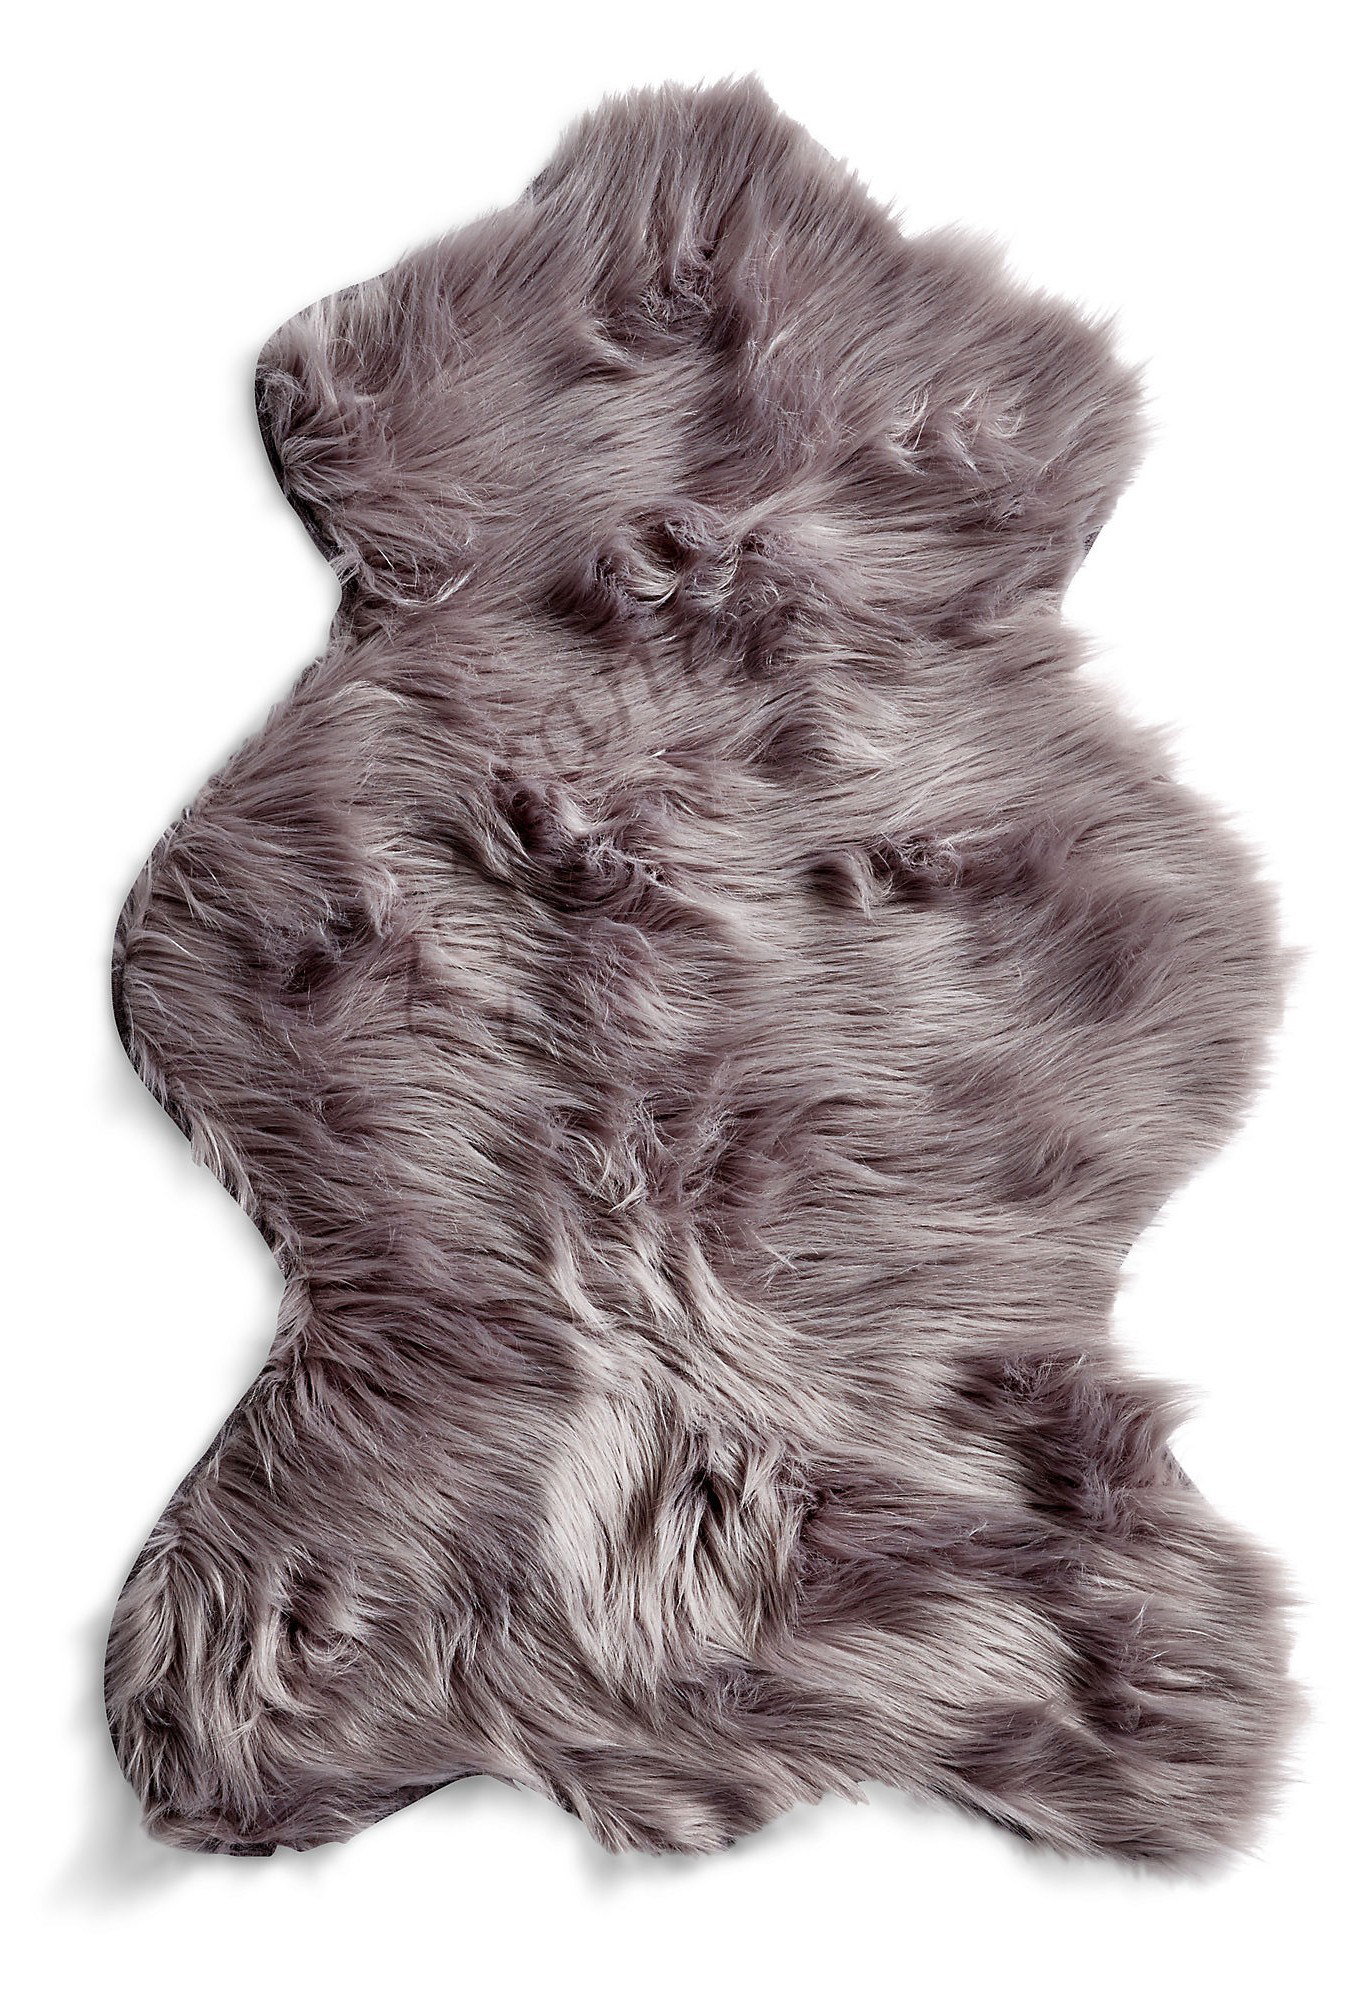 Fur Rug | Fur Rug White | Real Tiger Rug